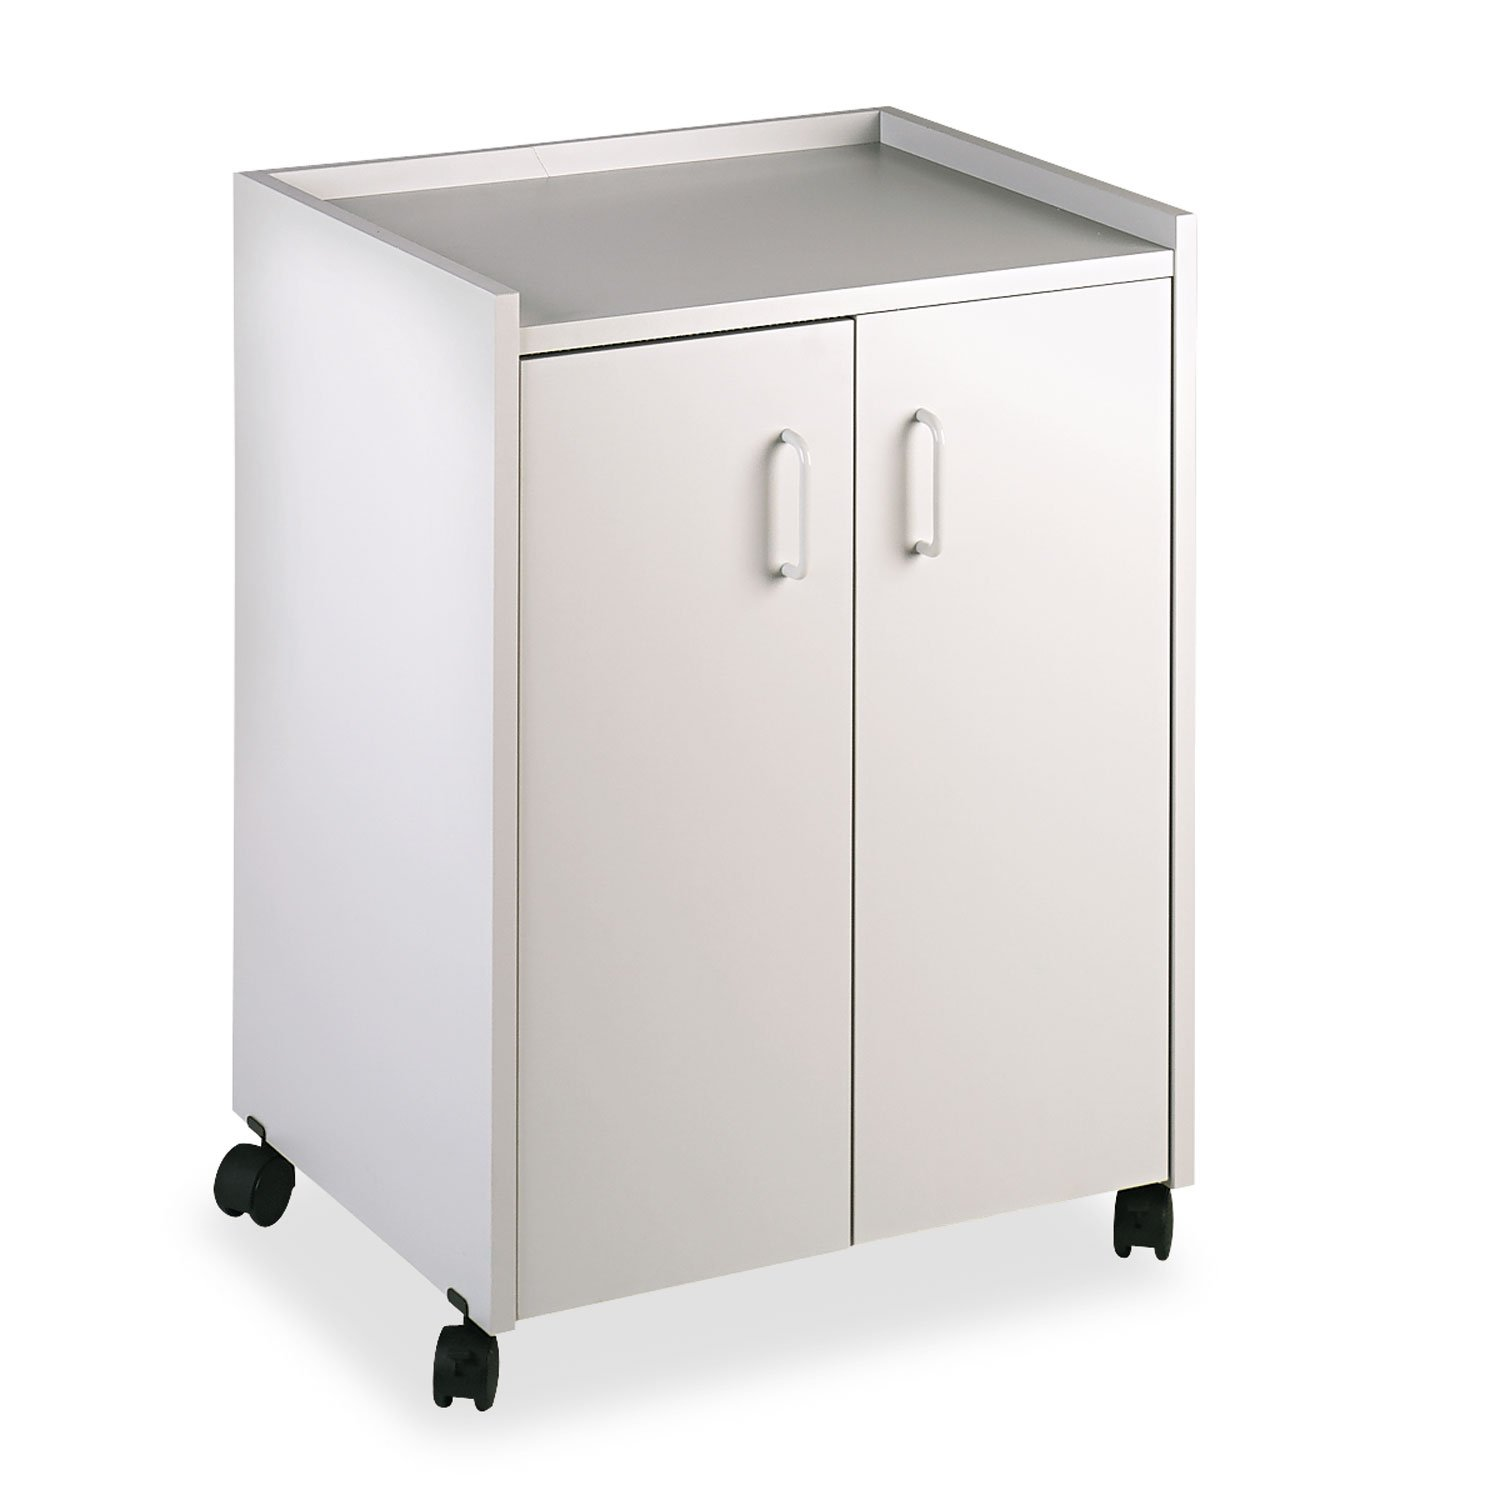 Amazon.com: Safco Products 8953GR Mobile Refreshment Hospitality Center,  Gray: Kitchen & Dining